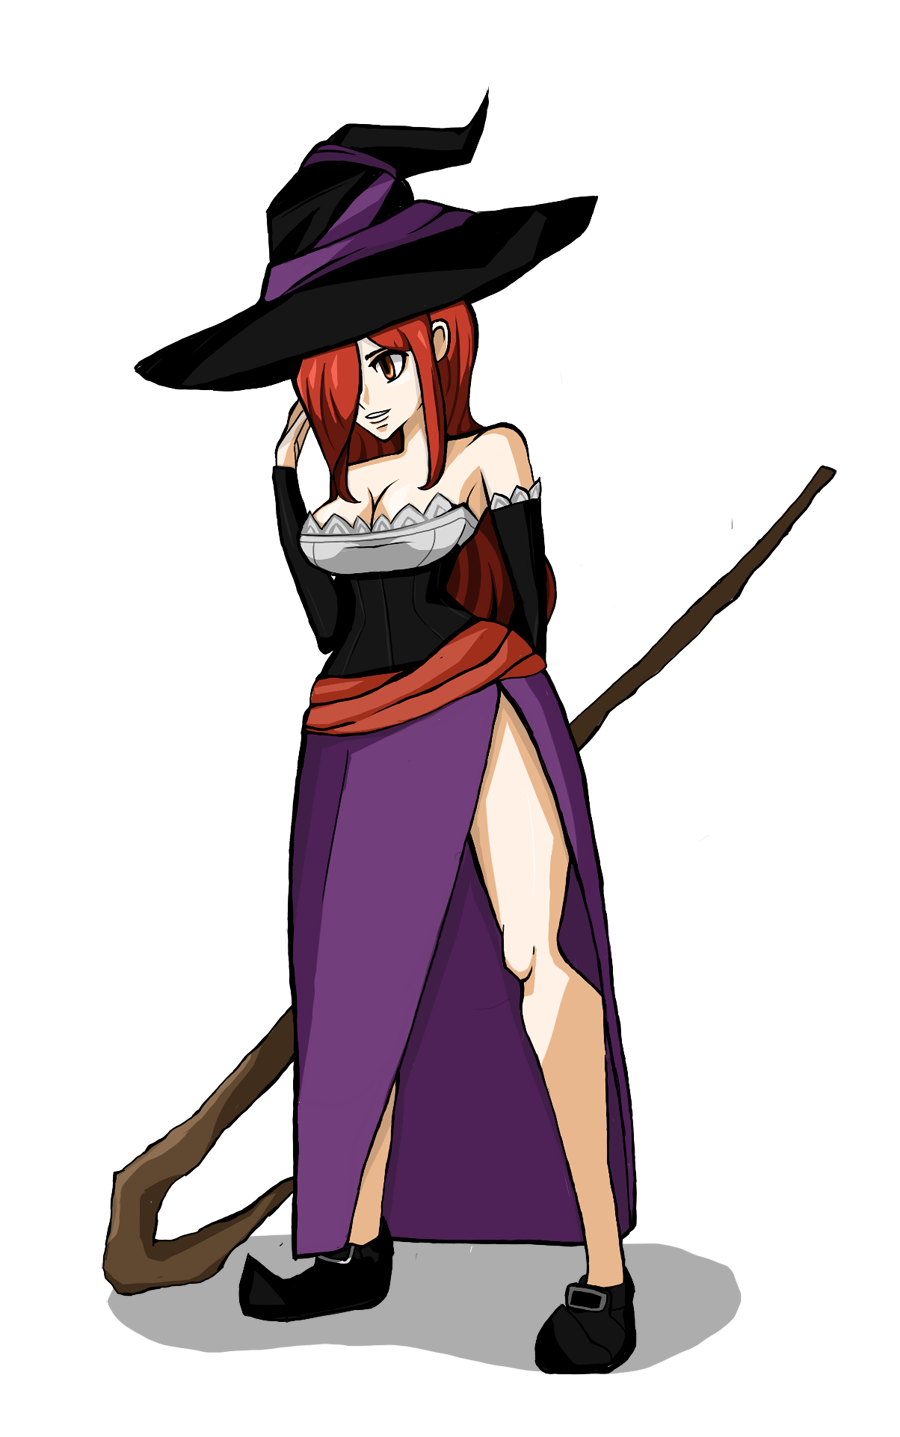 Sorceress SG style.